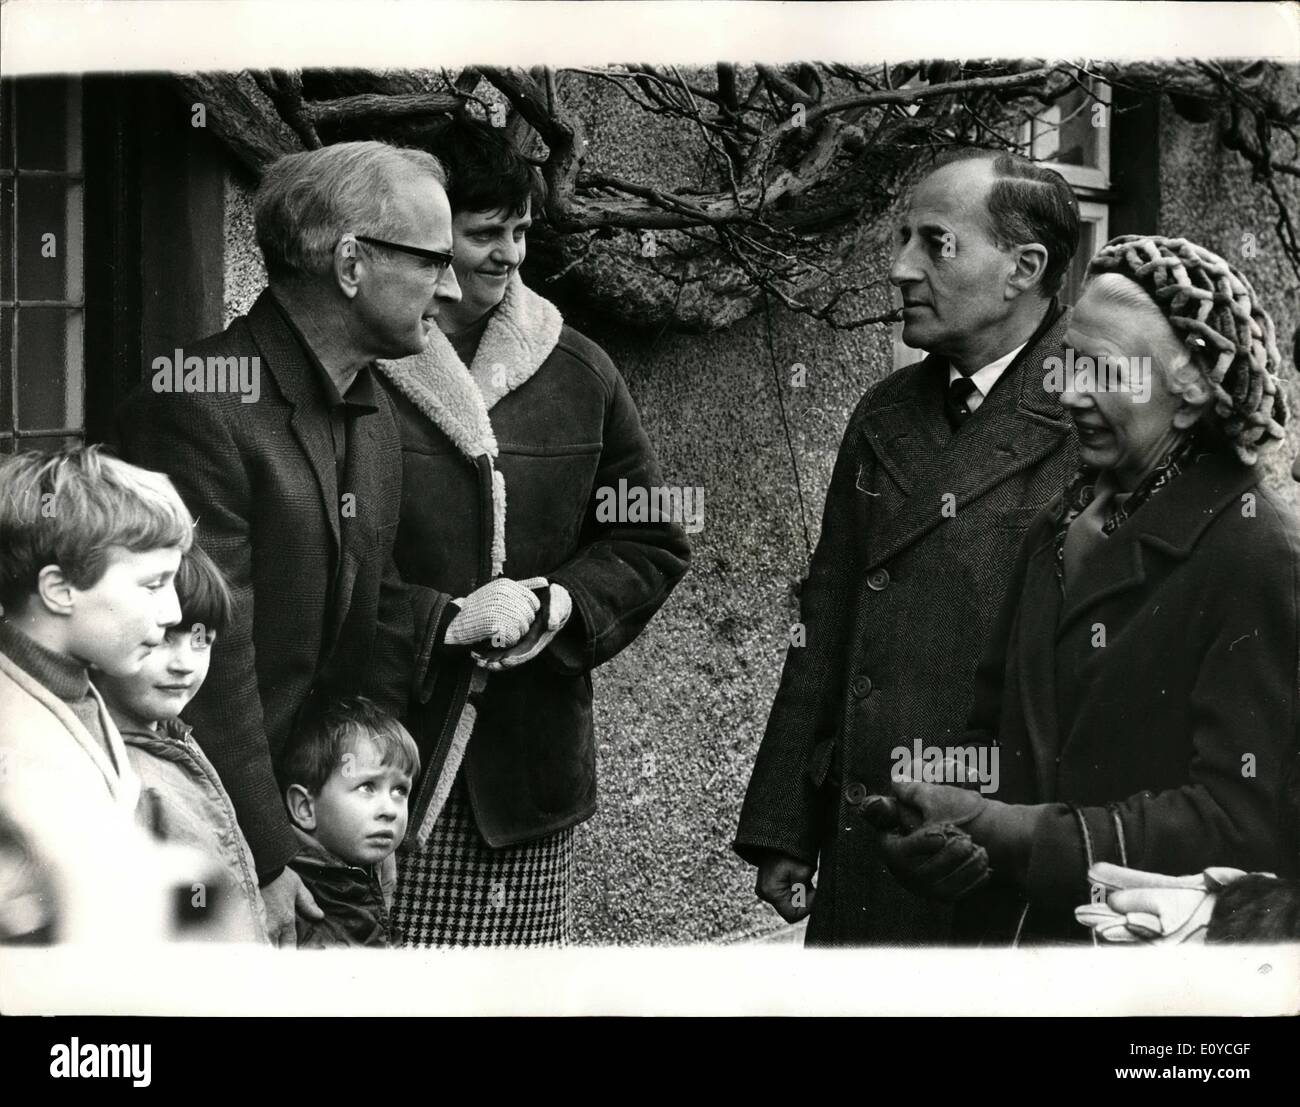 Nov. 11, 1969 - Northern Ireland Premier fights election campaign.: Captain Terence O'Neill, Prime Minister of Northern Stock Photo